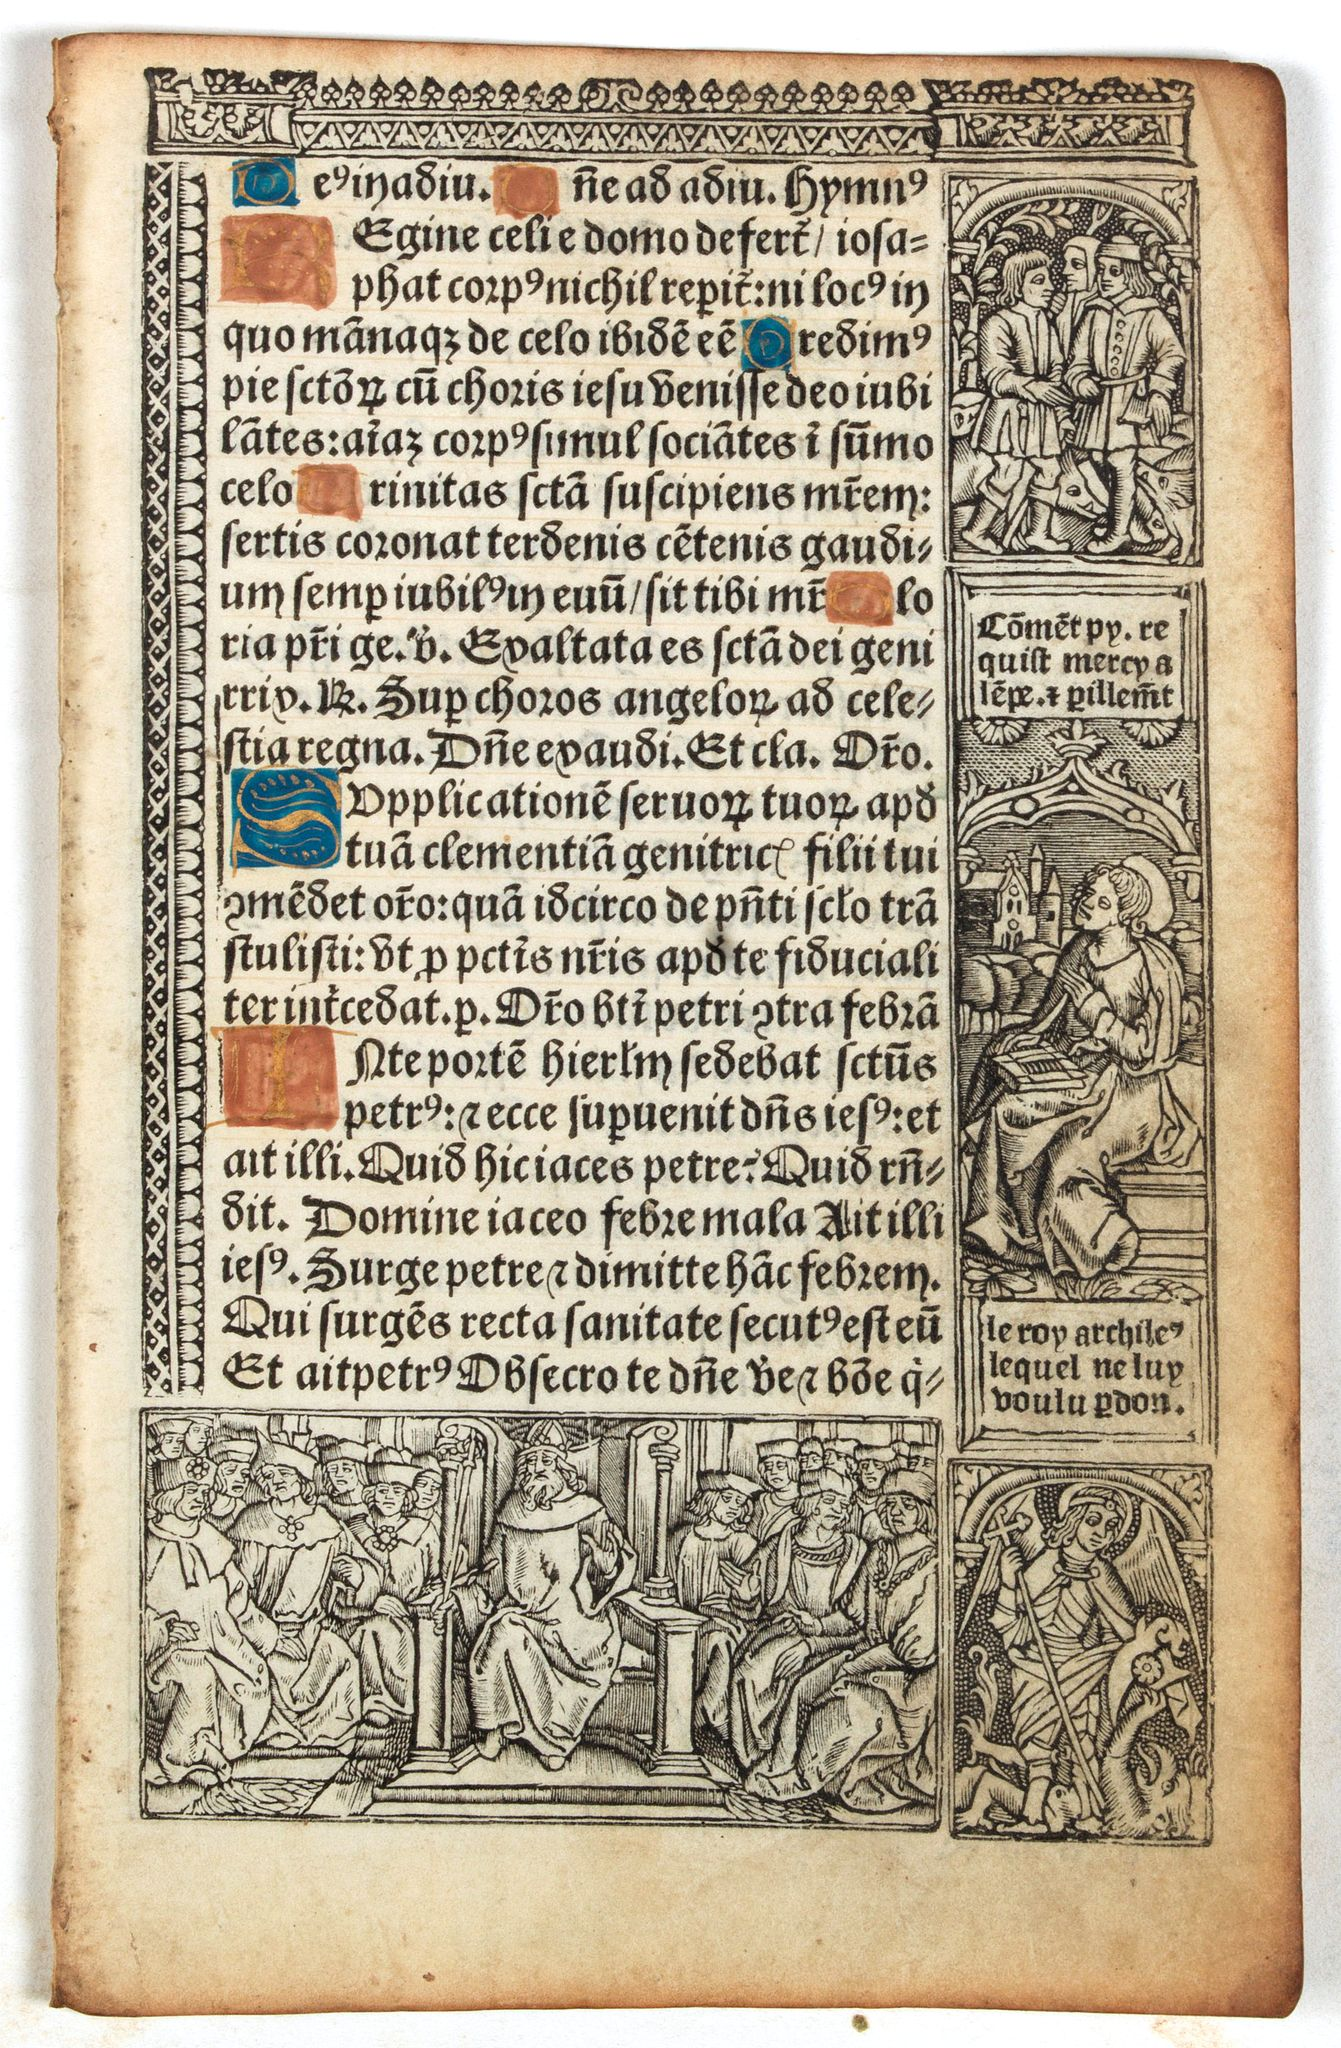 BOOK OF HOURS -  Leaf on vellum from a printed Book of Hours.